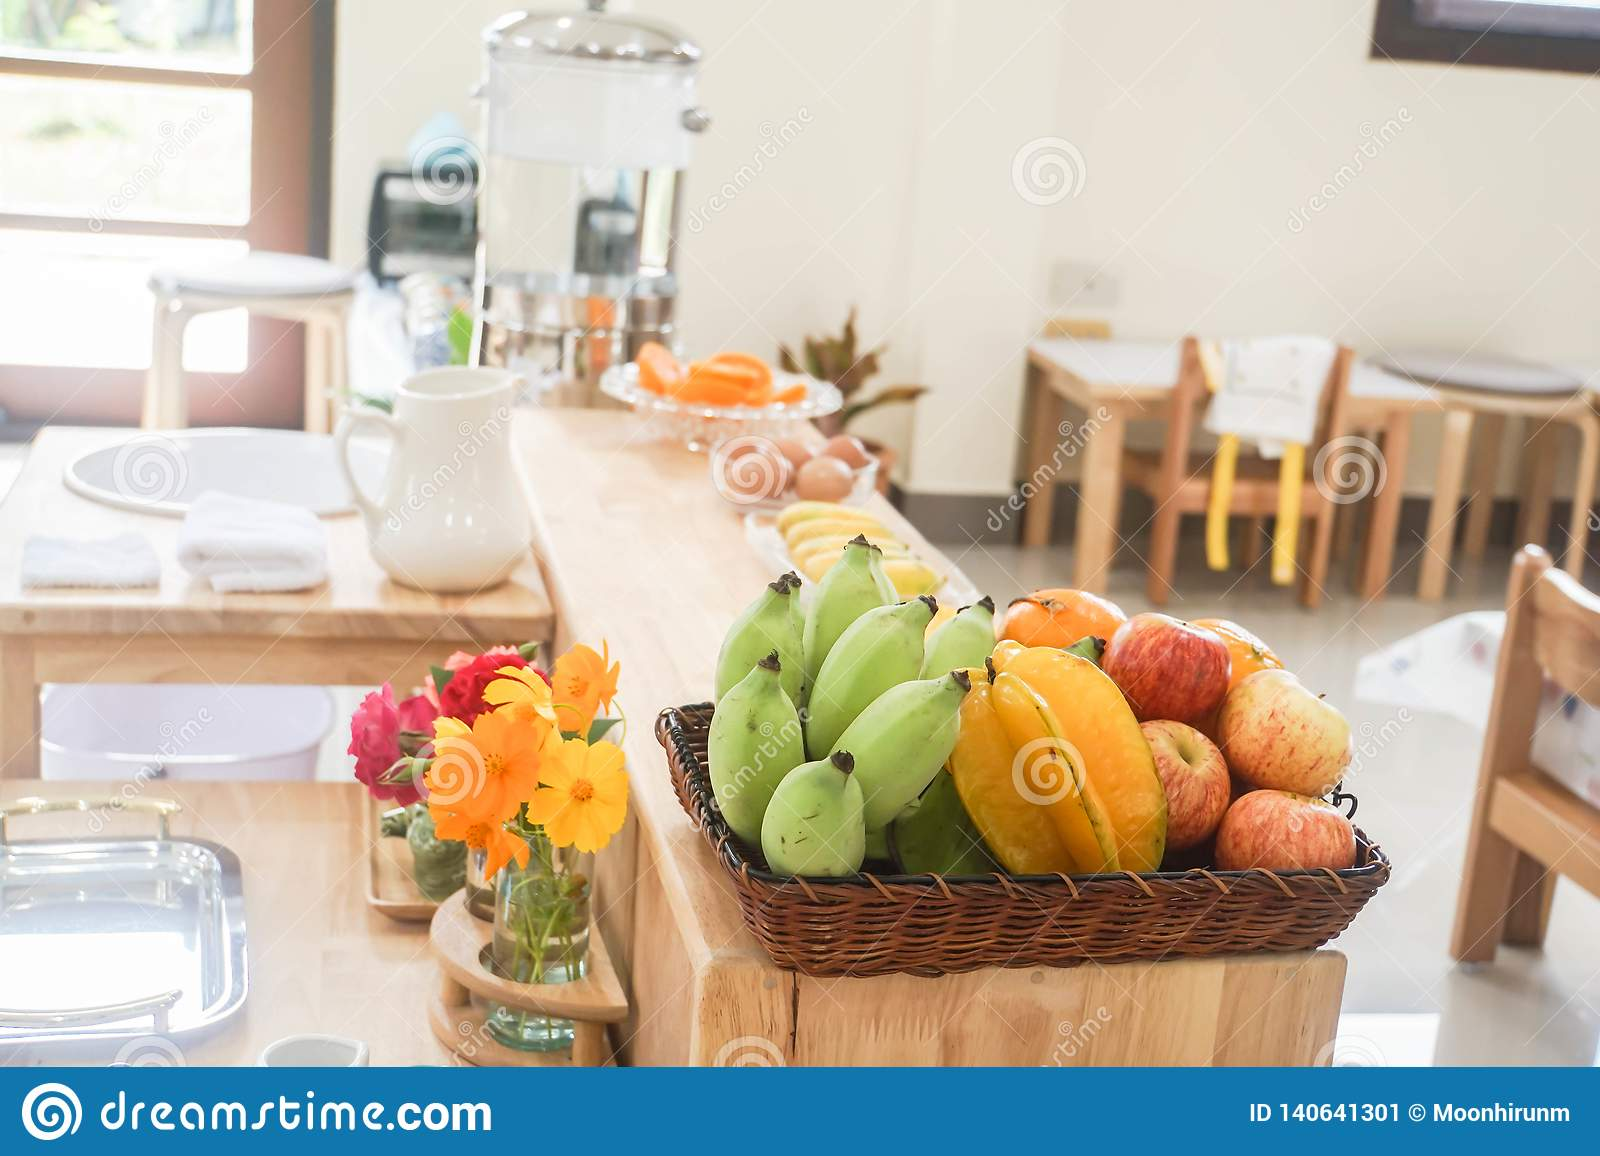 Tropical Fruit On Wooden Basket In Kitchen At Home Stock ...